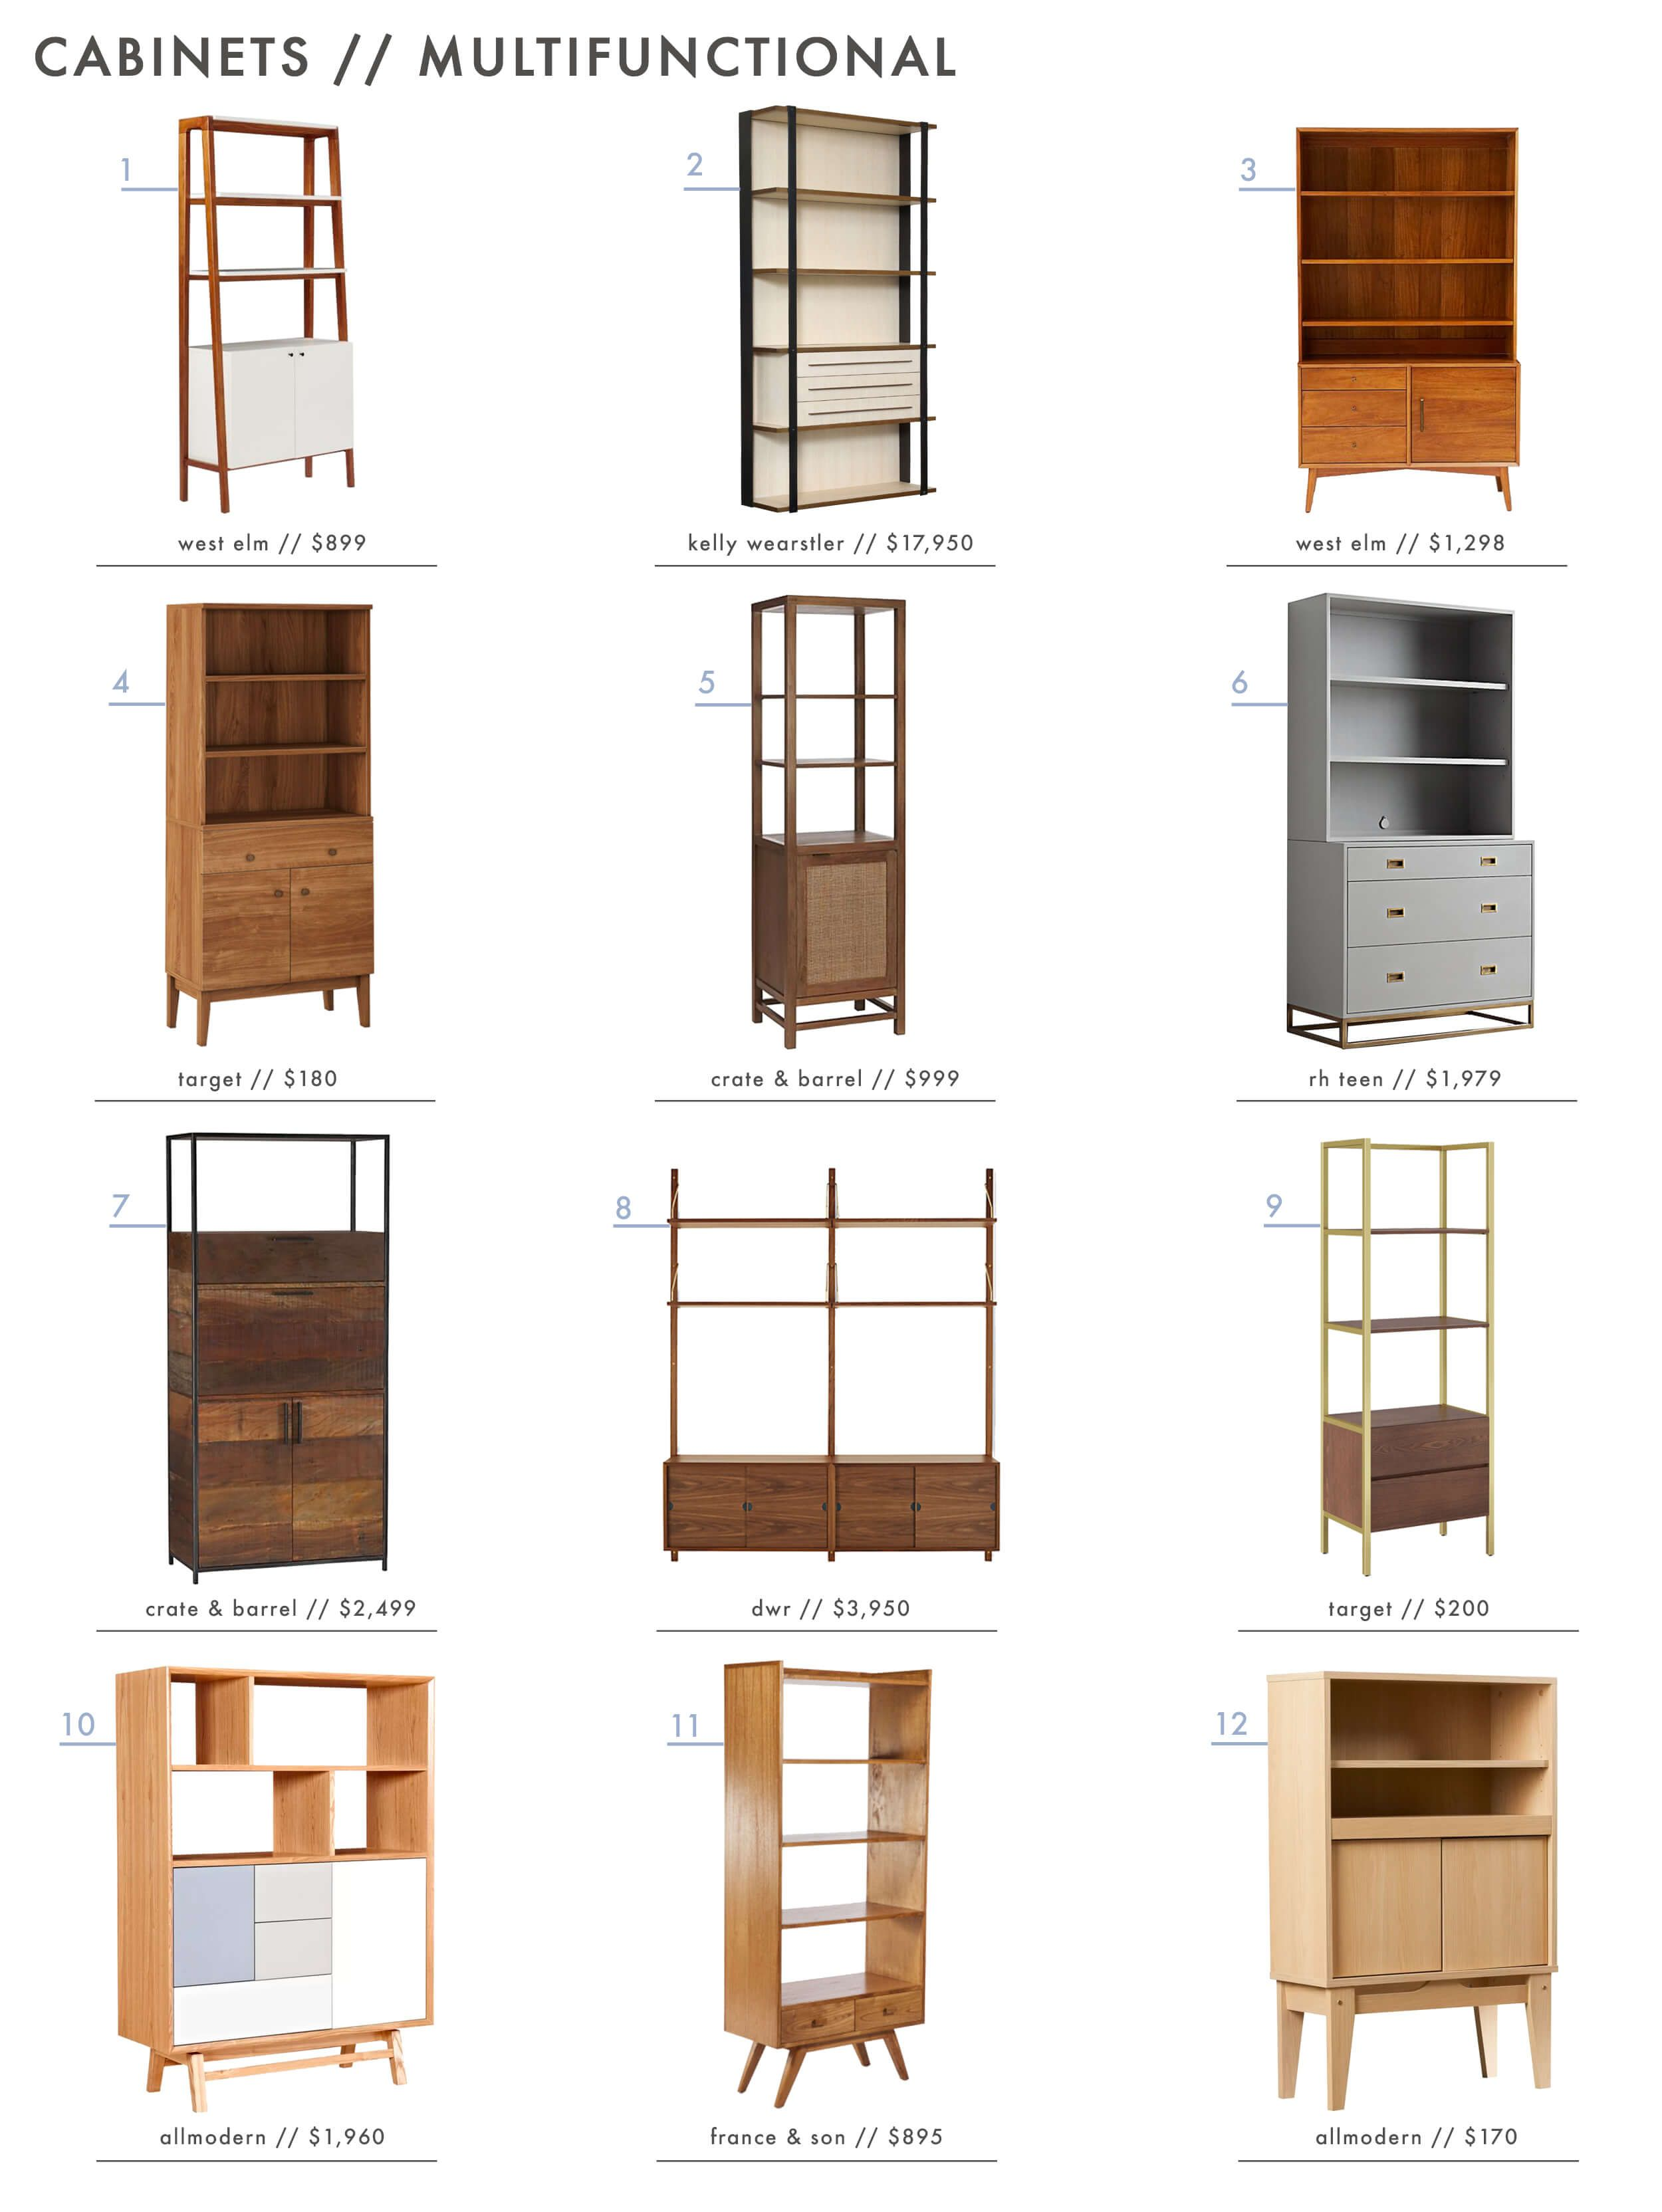 Rethink The Hutch: Storage Cabinet Roundup   Emily Henderson